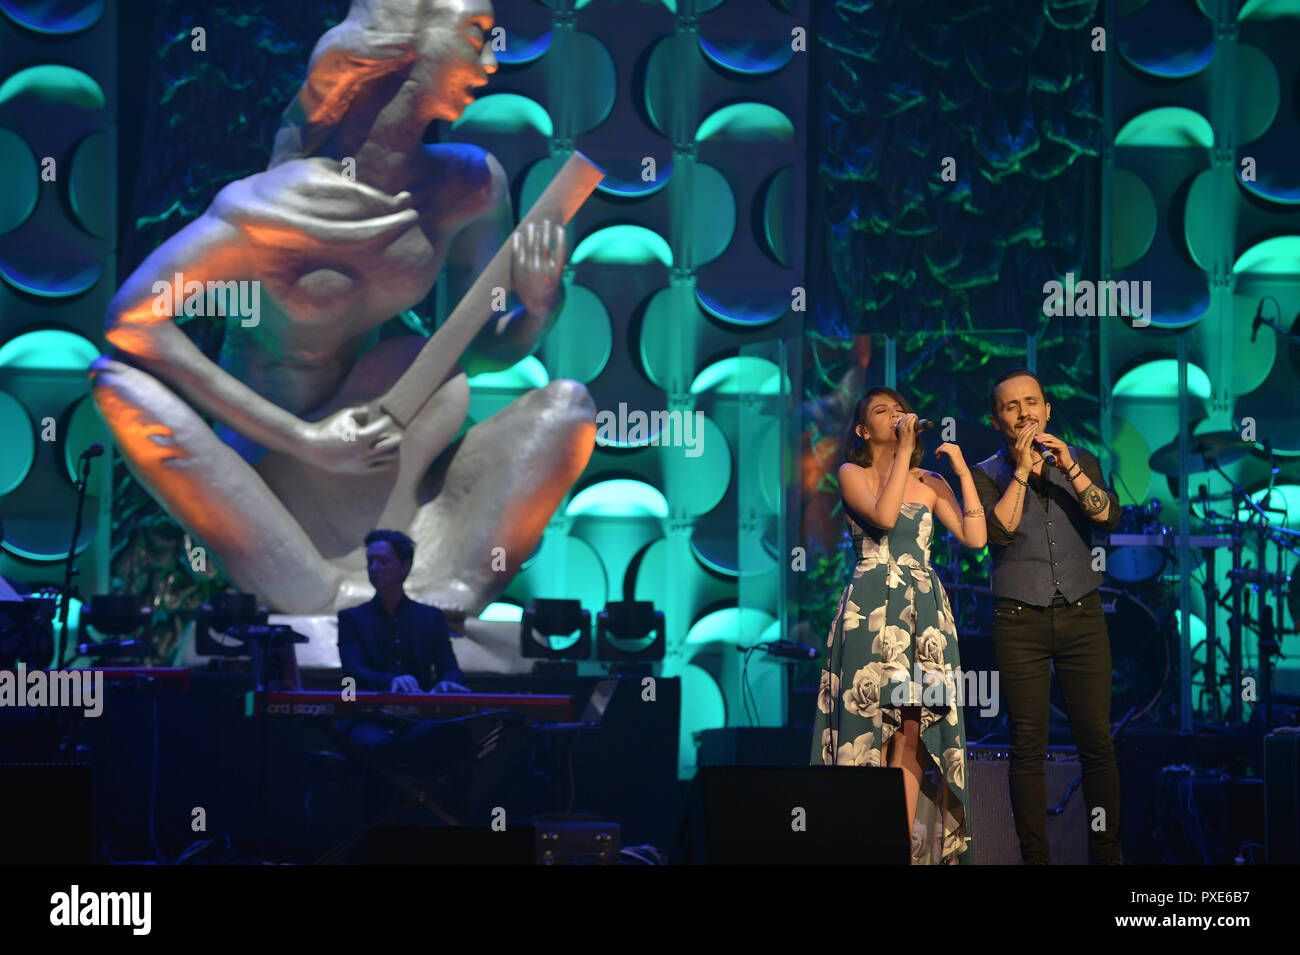 Miami, FL, USA. 18th Oct, 2018. Susan Quiroga and Israel Brito performs at the 6th Annual Latin Songwriters Hall Of Fame La Musa Awards at James L Knight Center on October 18, 2018 in Miami, Florida. Credit: Mpi10/Media Punch/Alamy Live News - Stock Image